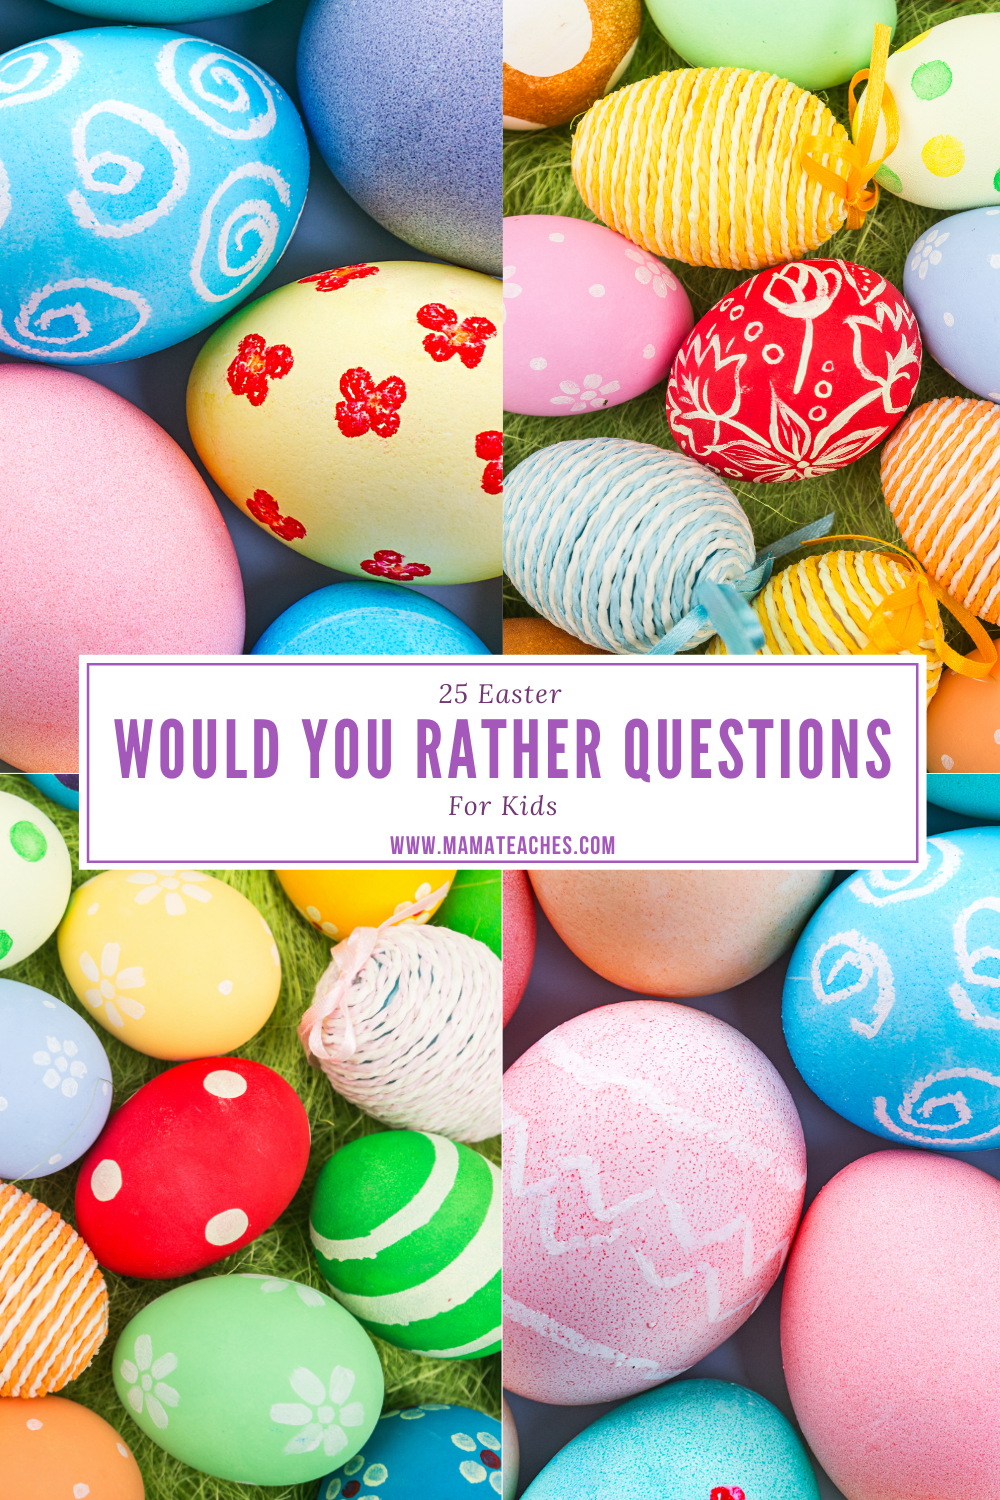 25 Easter Would You Rather Questions